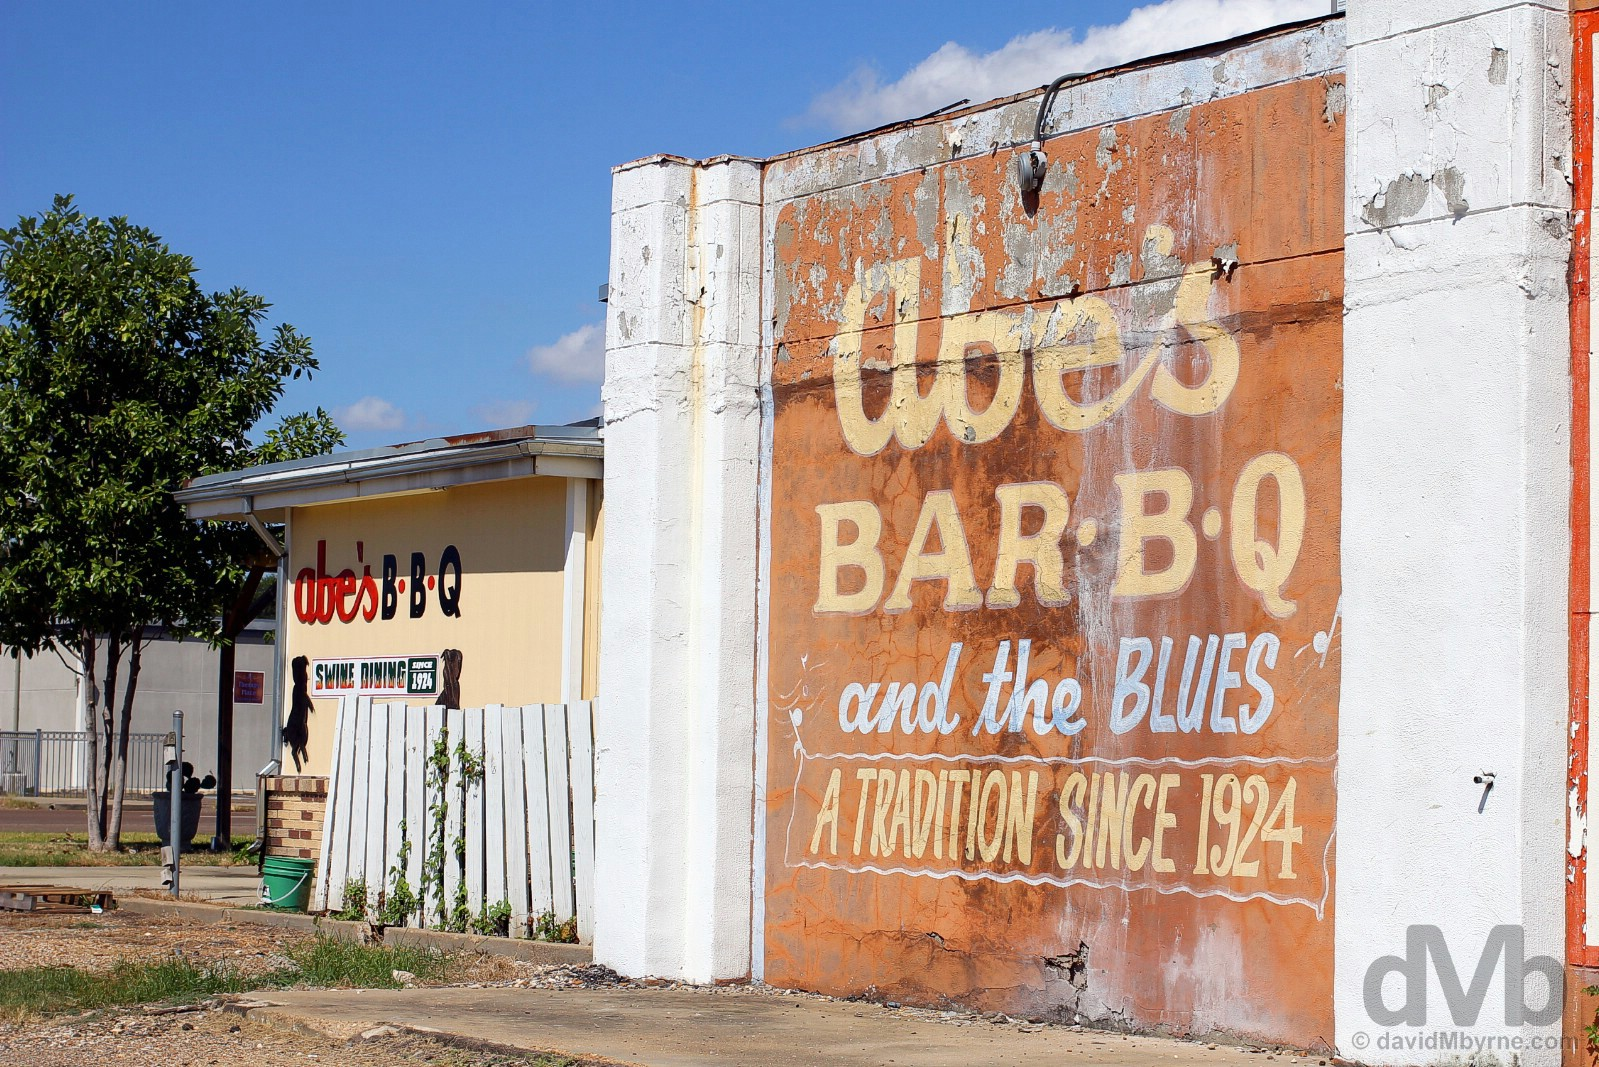 Abe's Bar.B.Q. Swine Dining since 1924. Clarksdale, Mississippi, USA. September 19, 2016.